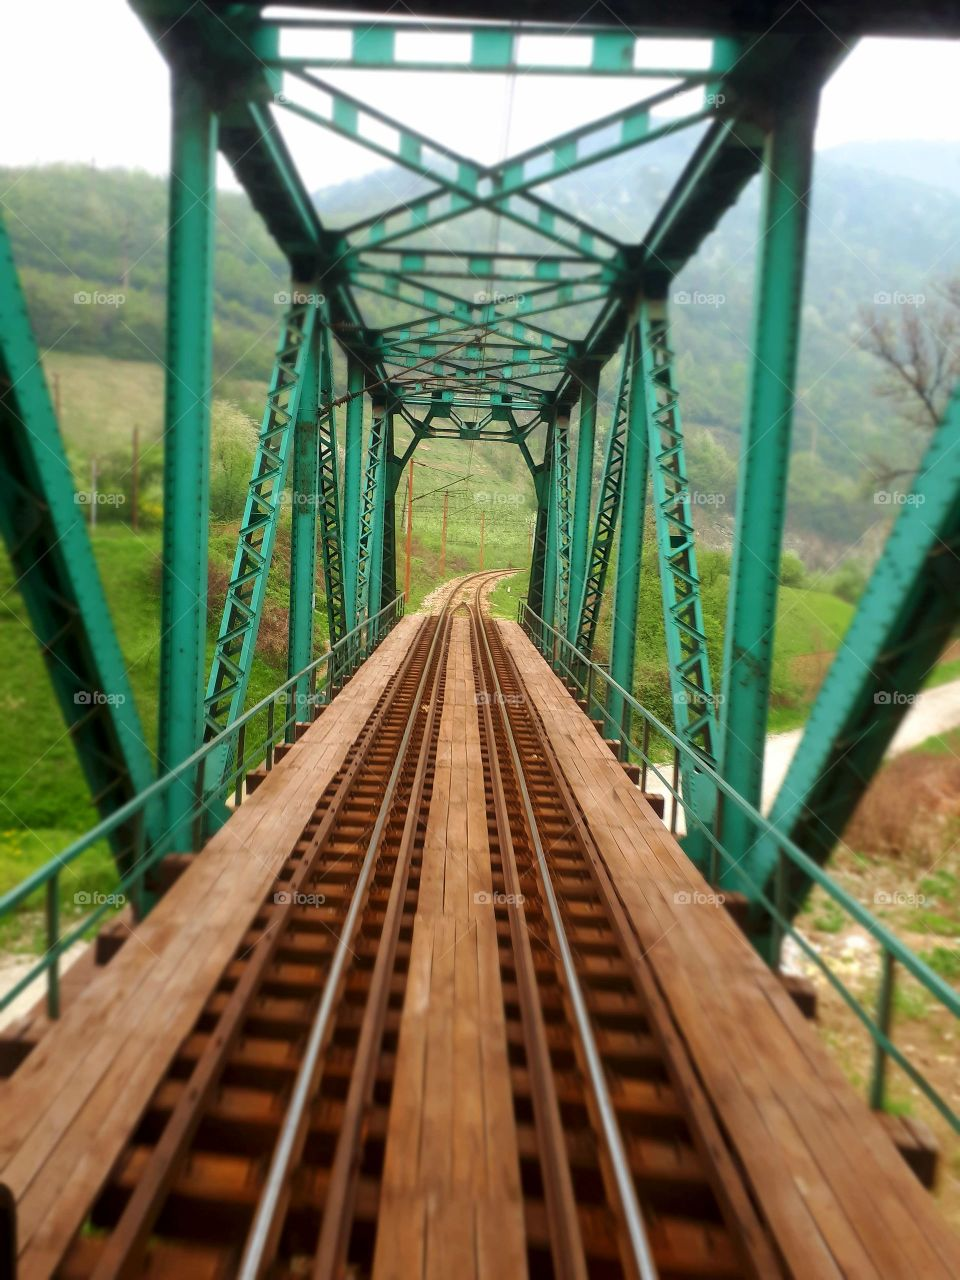 A view from the window of the last passenger wagon to the railway green bridge on the river of Bosna.